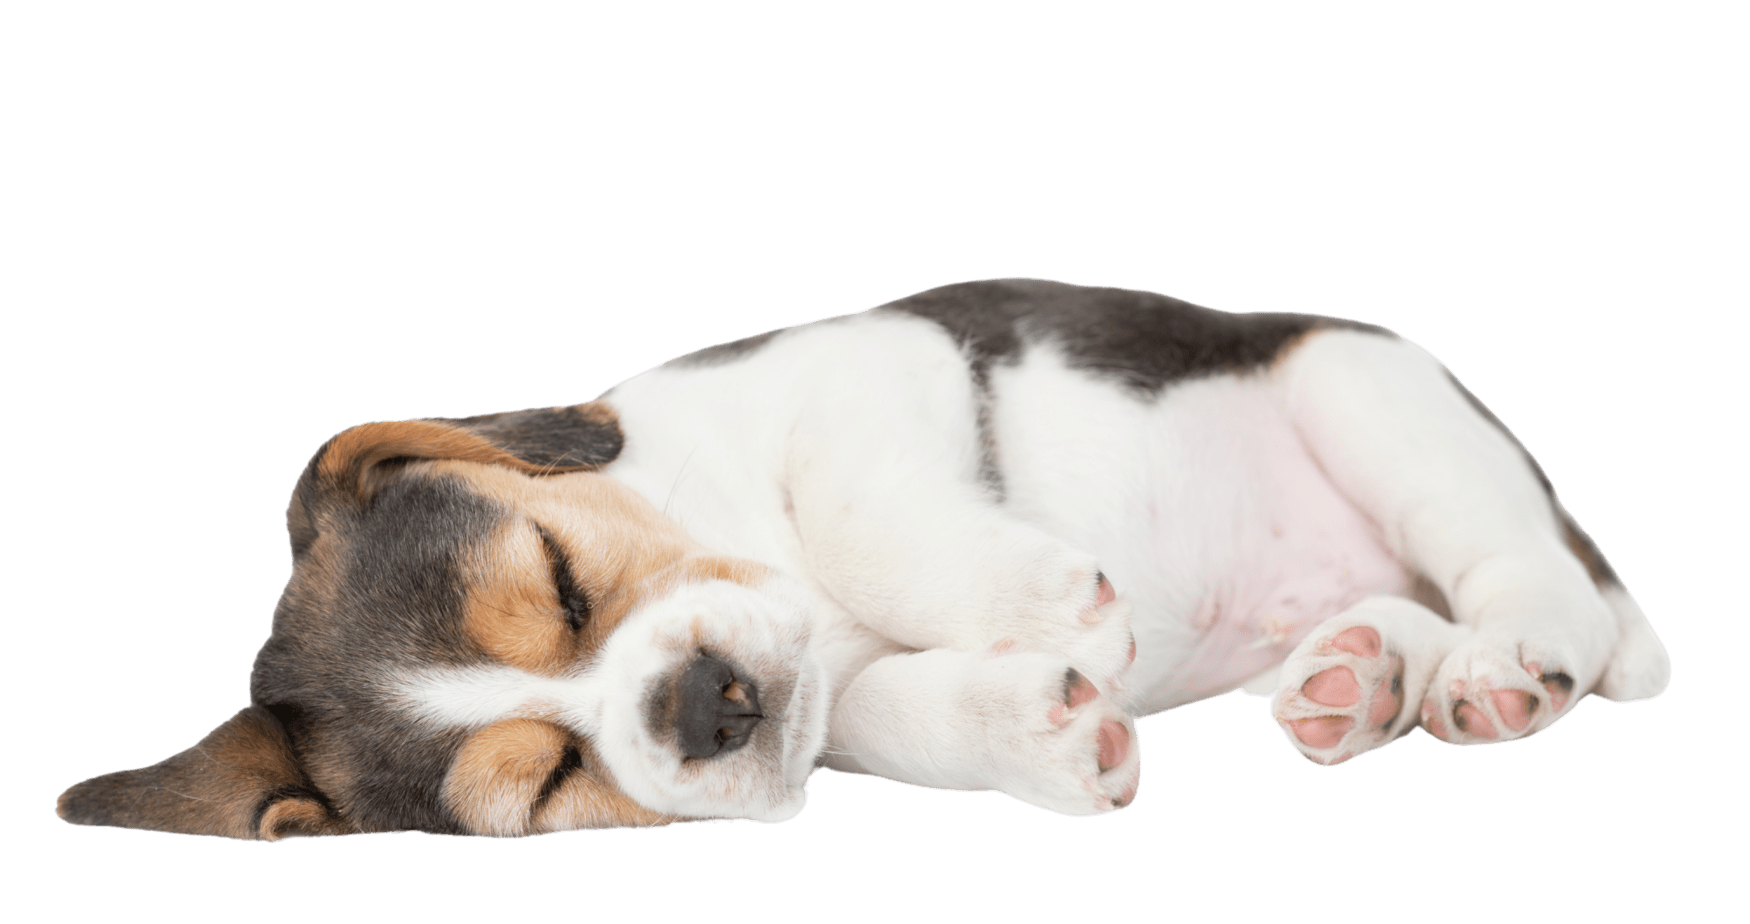 sleeping beagle pup is going to be rebarkable